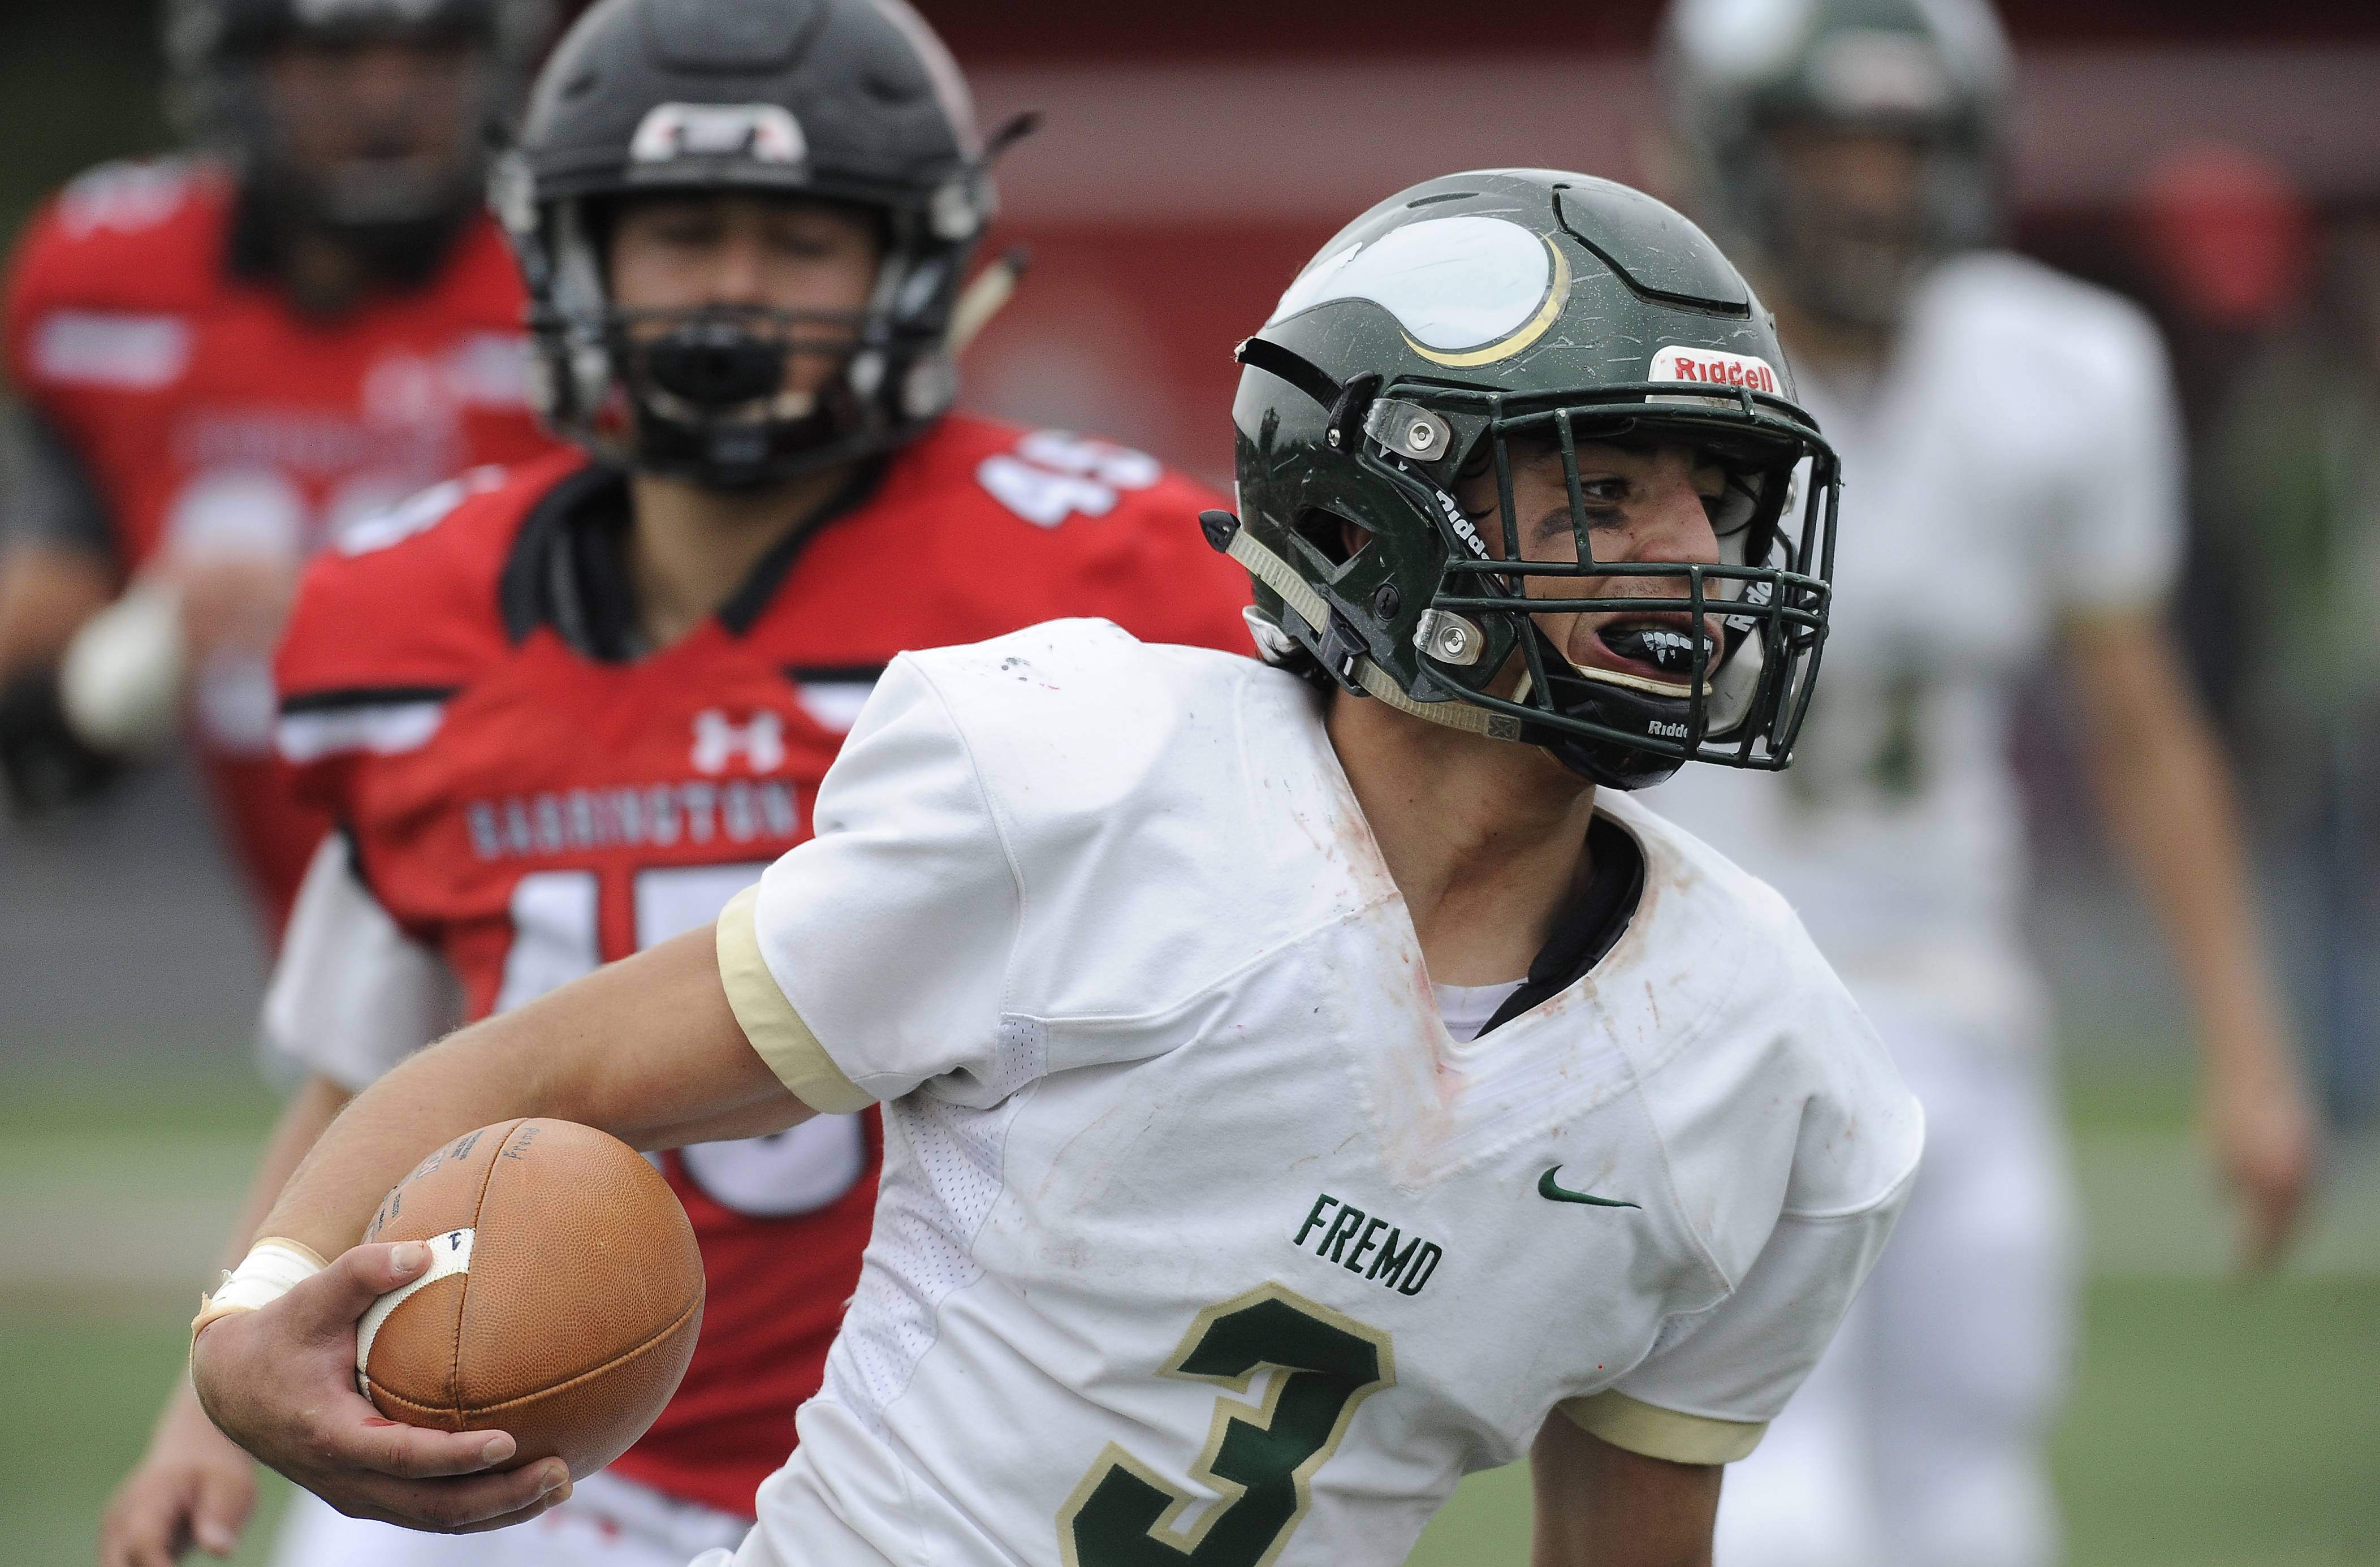 Fremd's Nick Rattin runs for yardage against Barrington last Saturday at Barrington. Fremd hosts Conant Friday night while Barrington entertains Hoffman Estates.